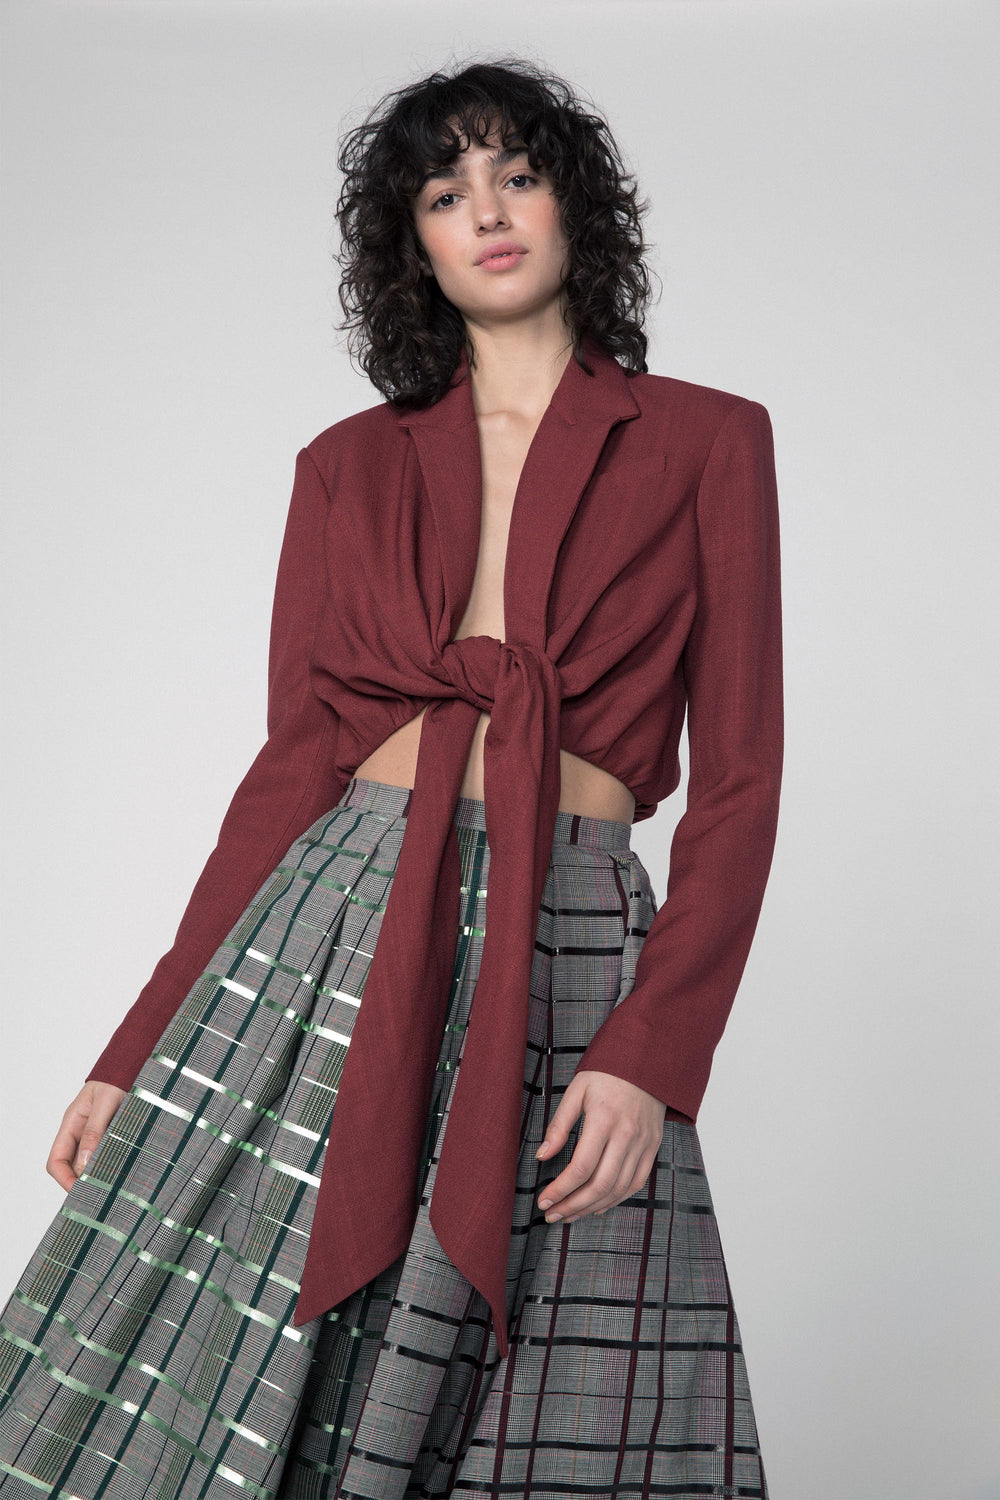 Cropped Tie Jacket